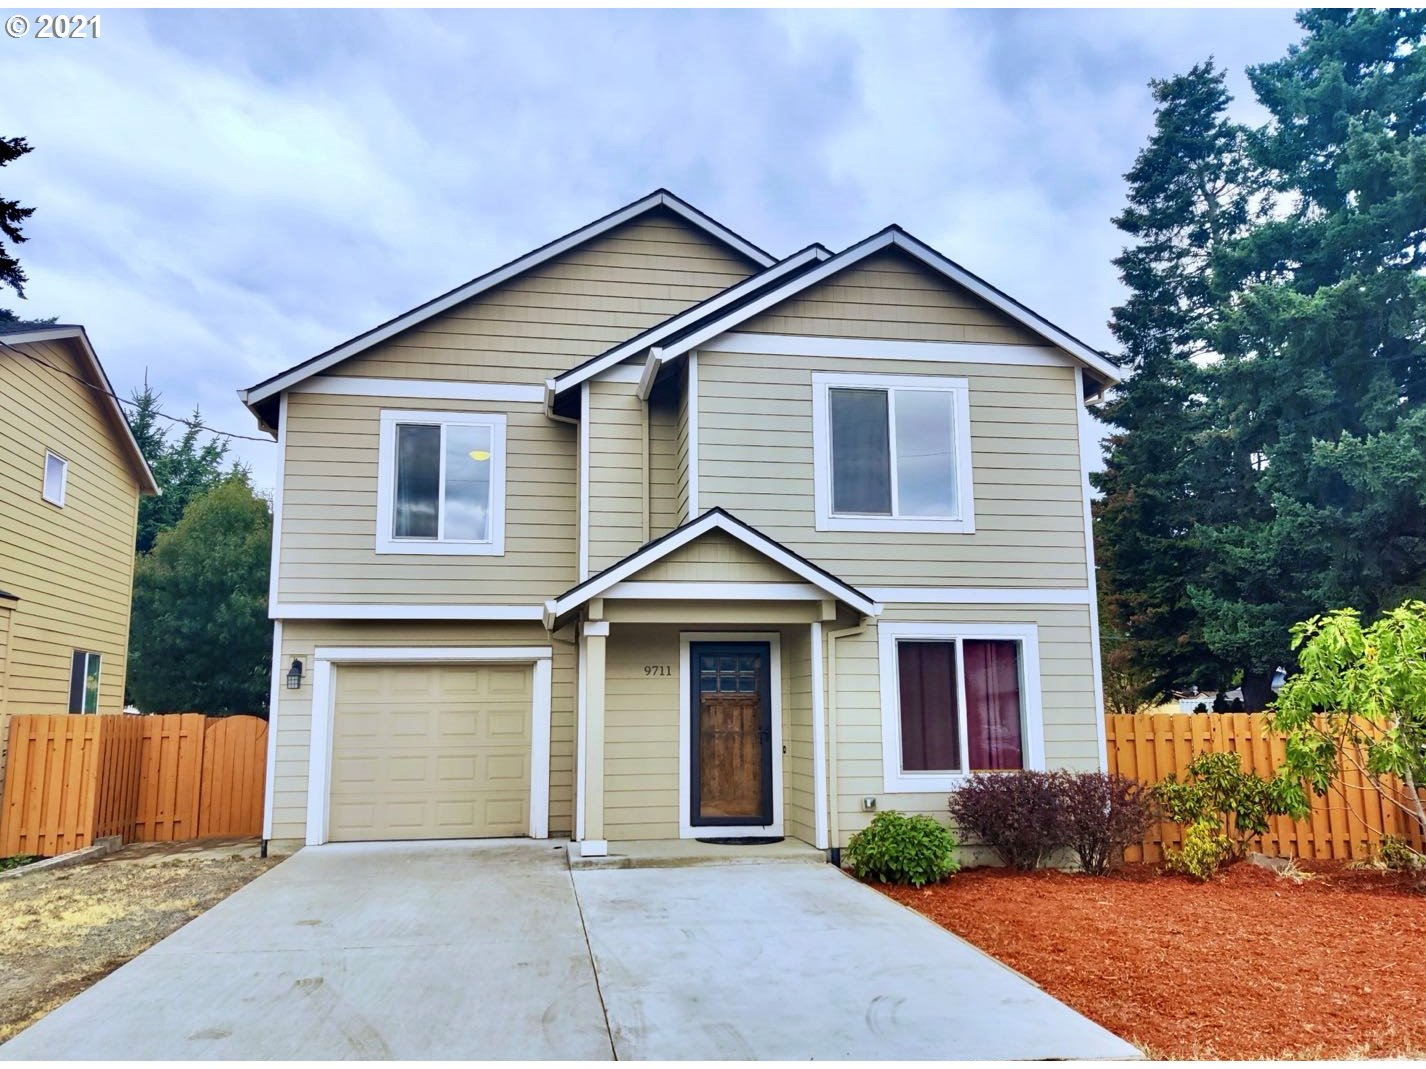 9711 SE 80TH AVE, Milwaukie OR 97222